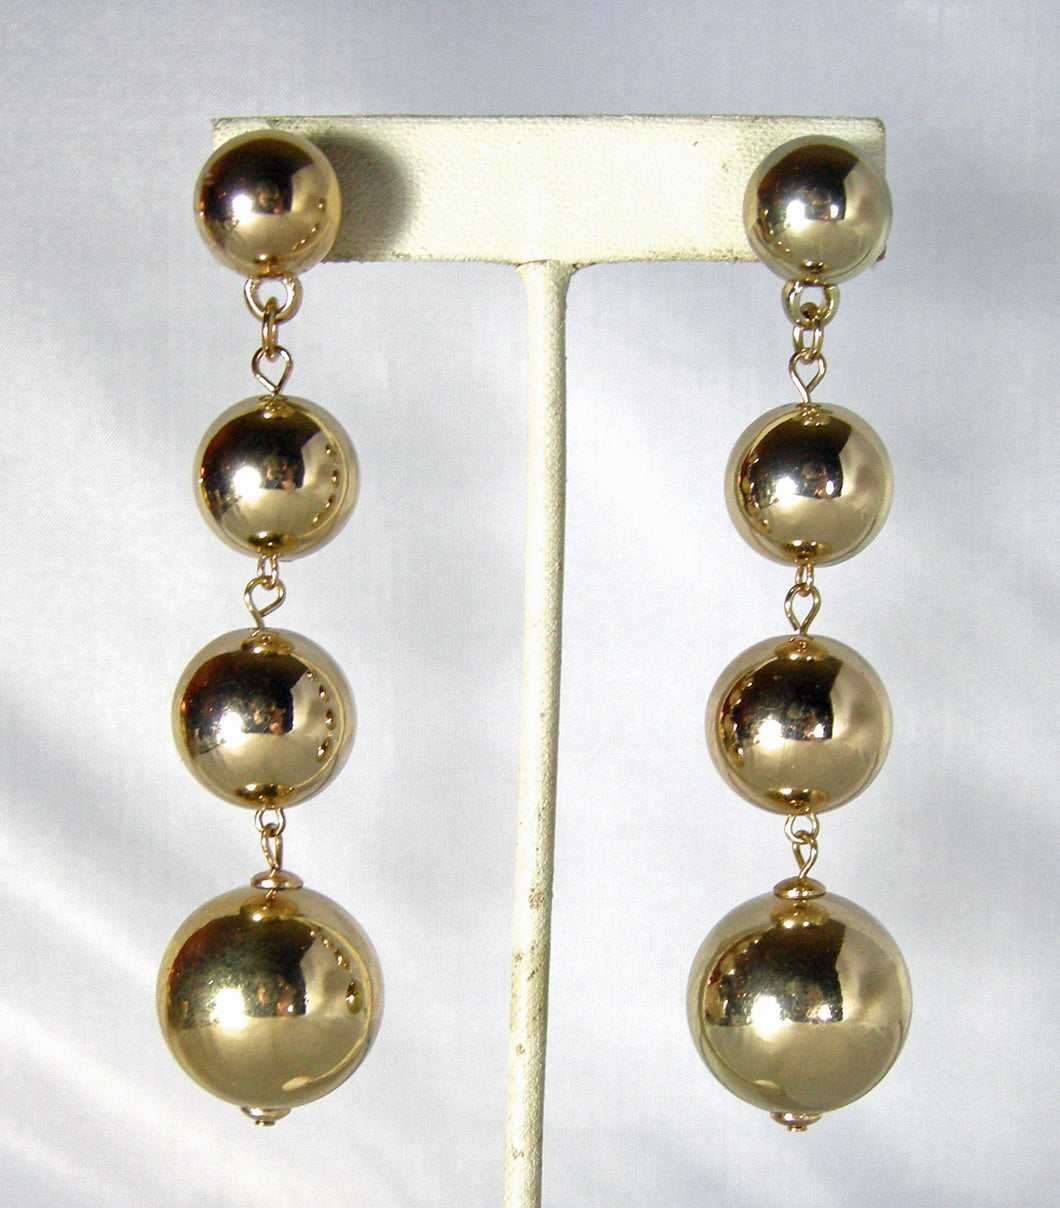 Kenneth Jay Lane Gold Tone Balls Dangling Pierced Earrings - JD10114